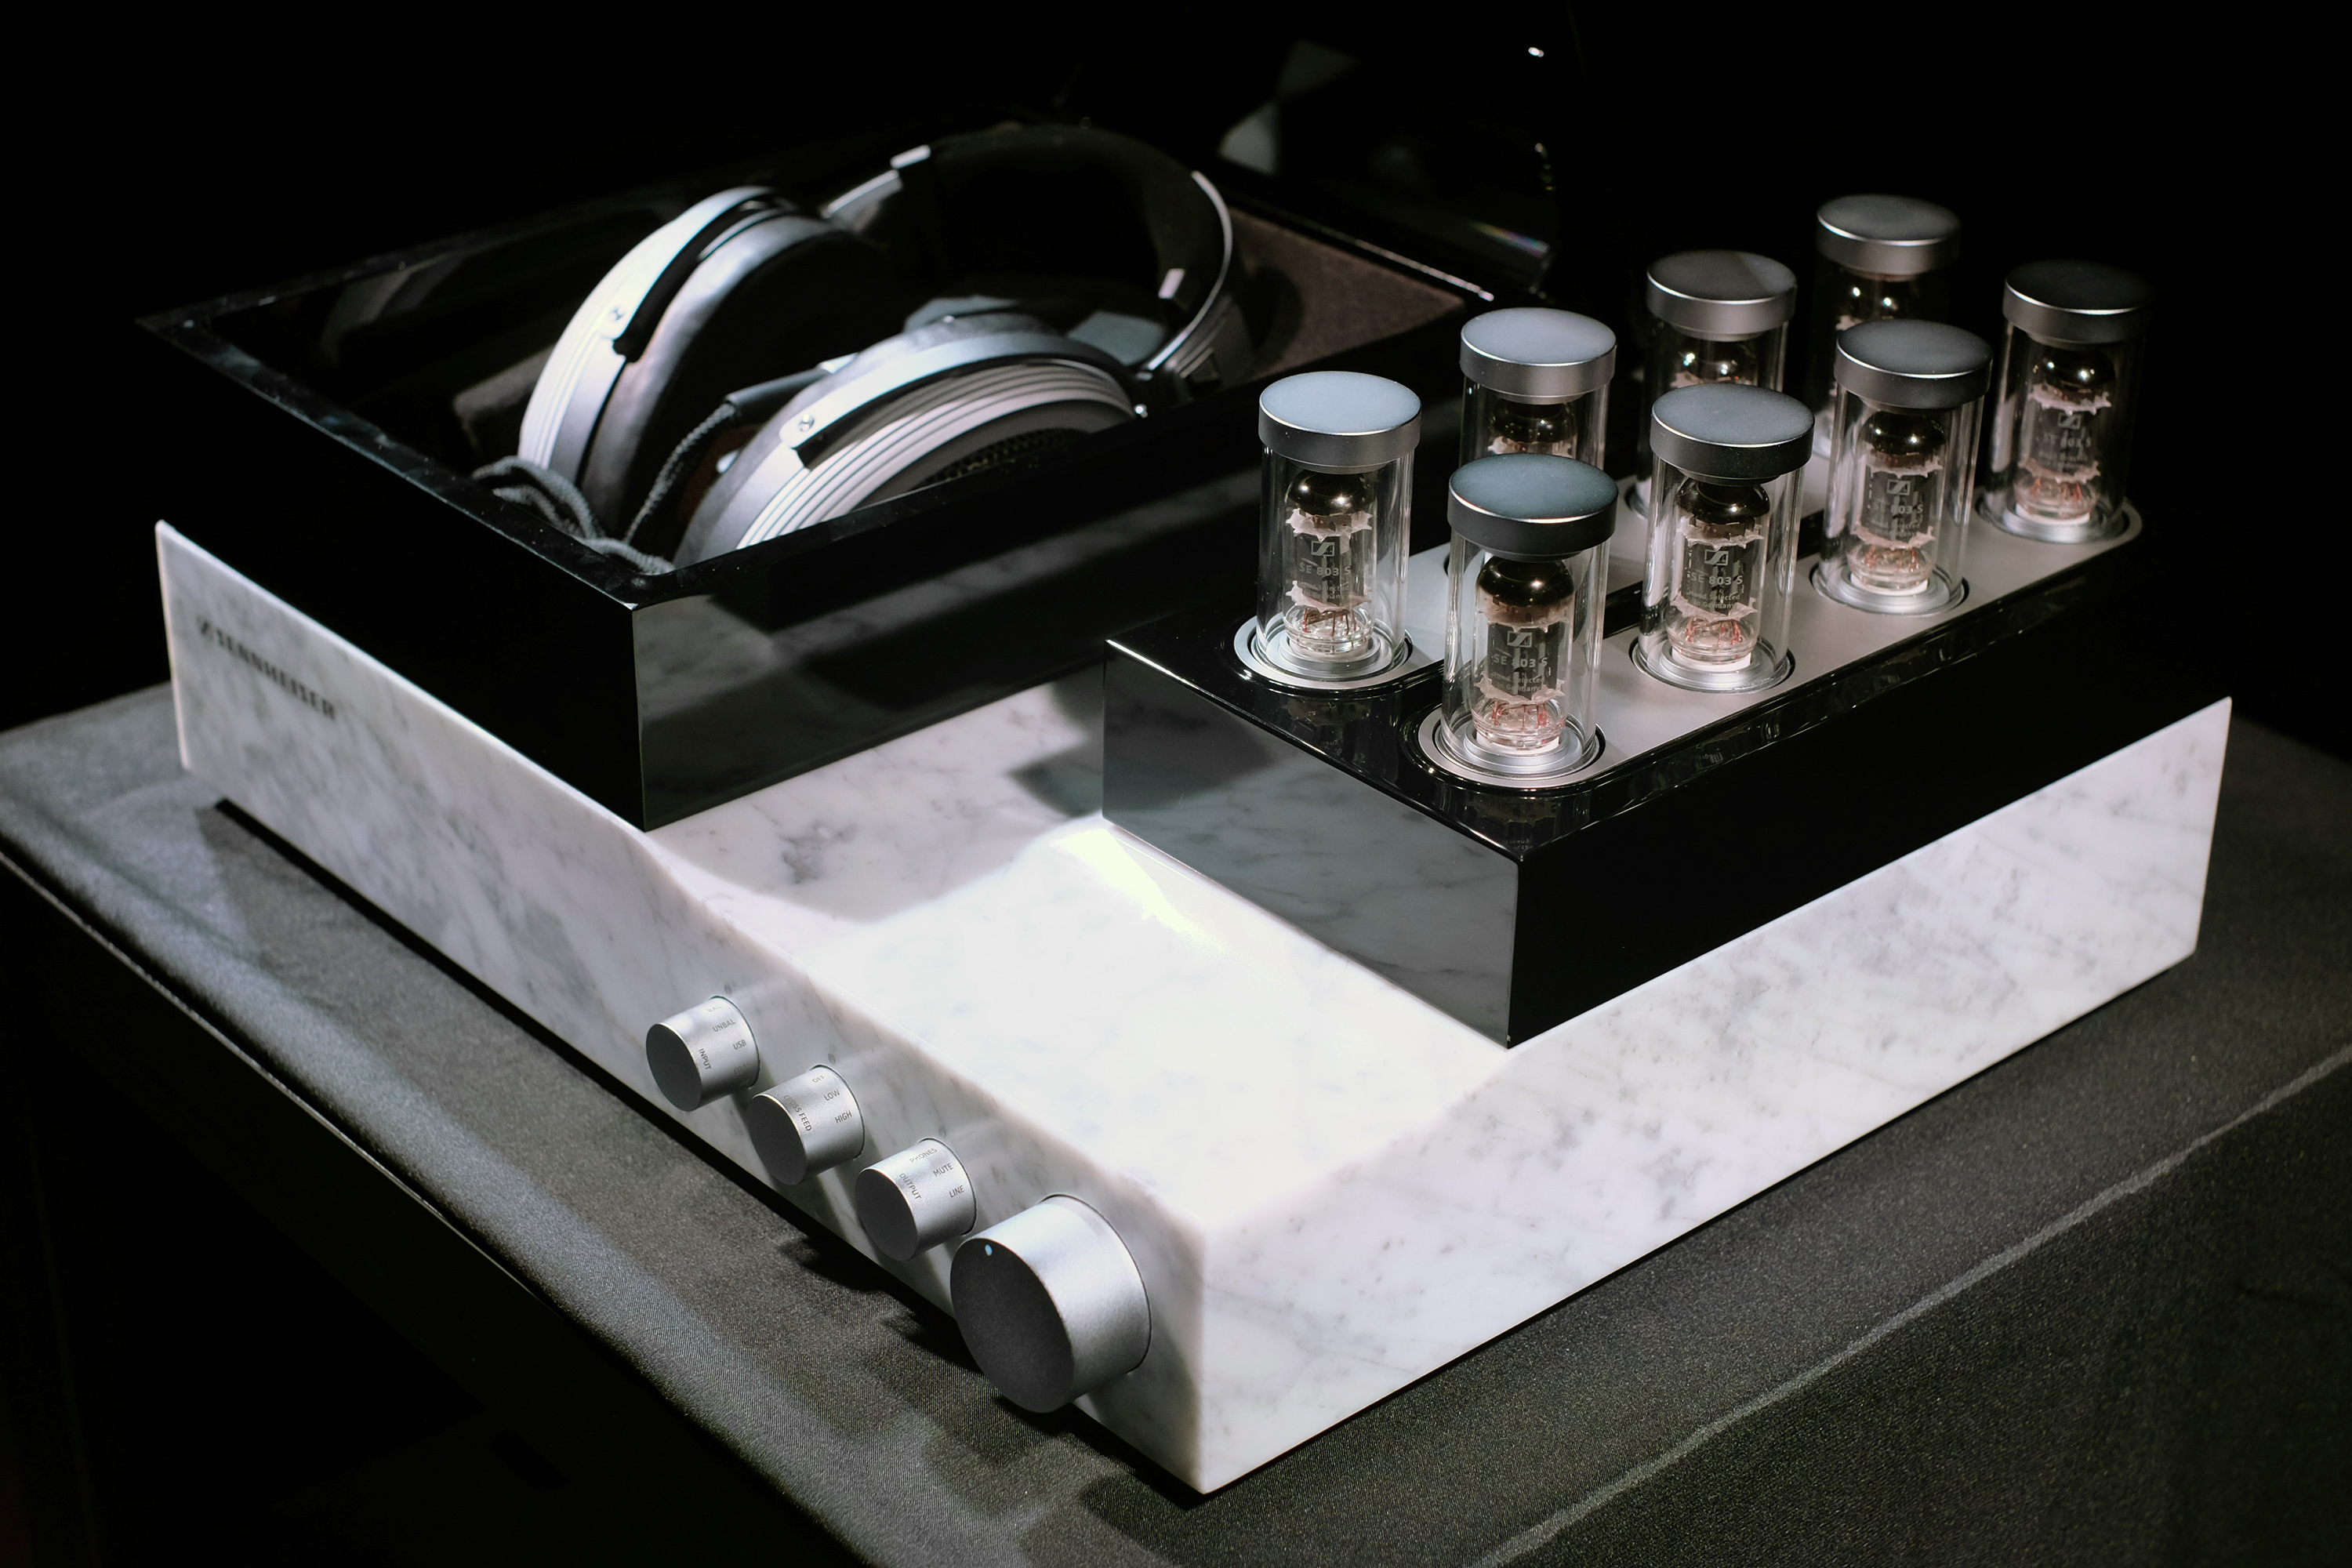 I didn't listen to a pair of $55,000 headphones